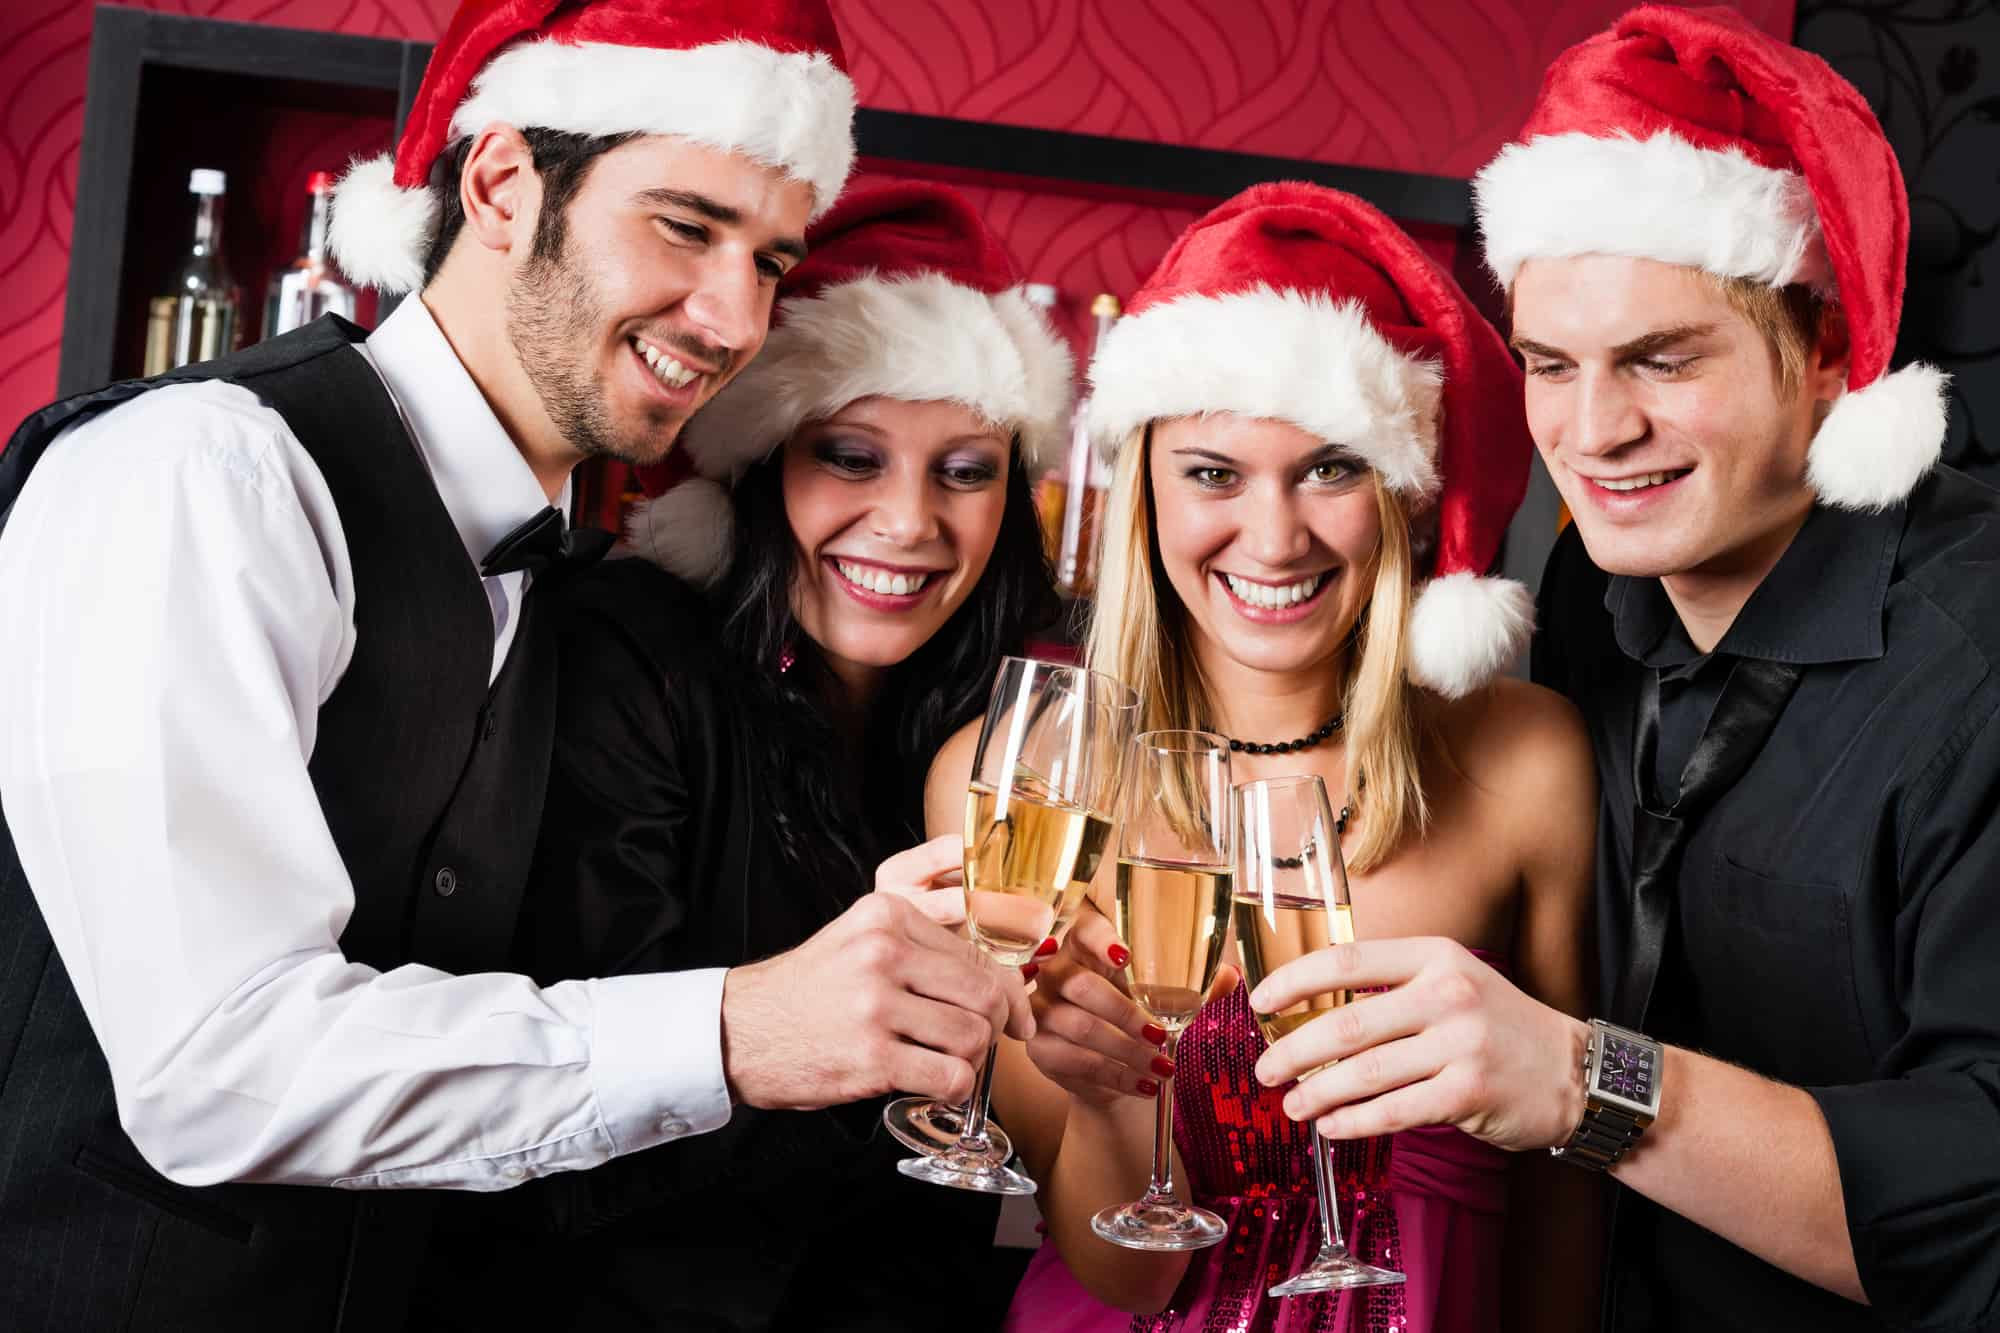 Office Christmas Party – Success or Legal Hangover? - Signature Staff